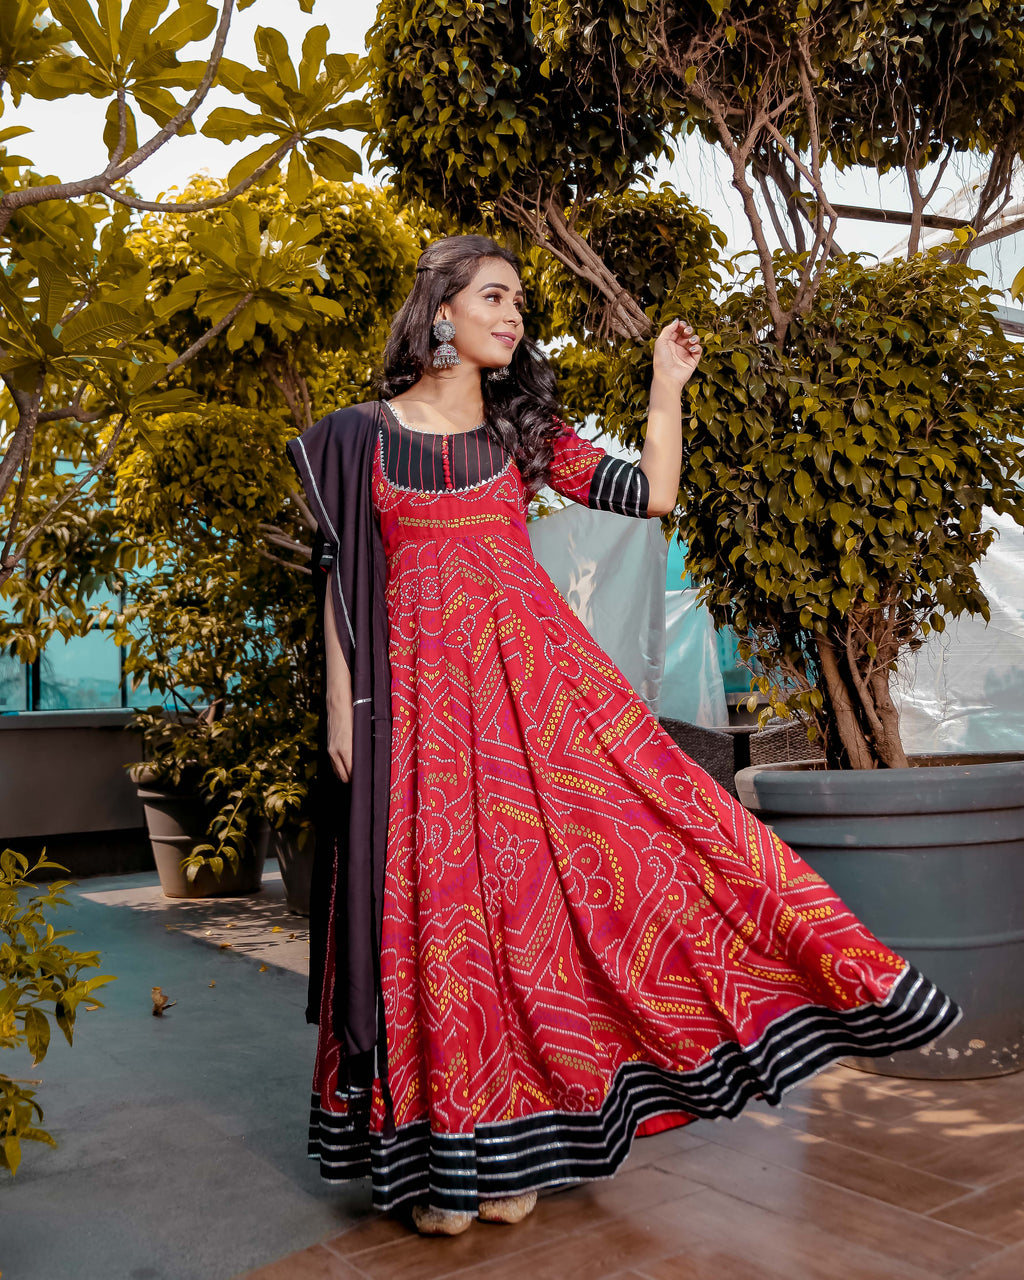 Red & Black Bandhej Anarkali with Black Gota Jaal Dupatta